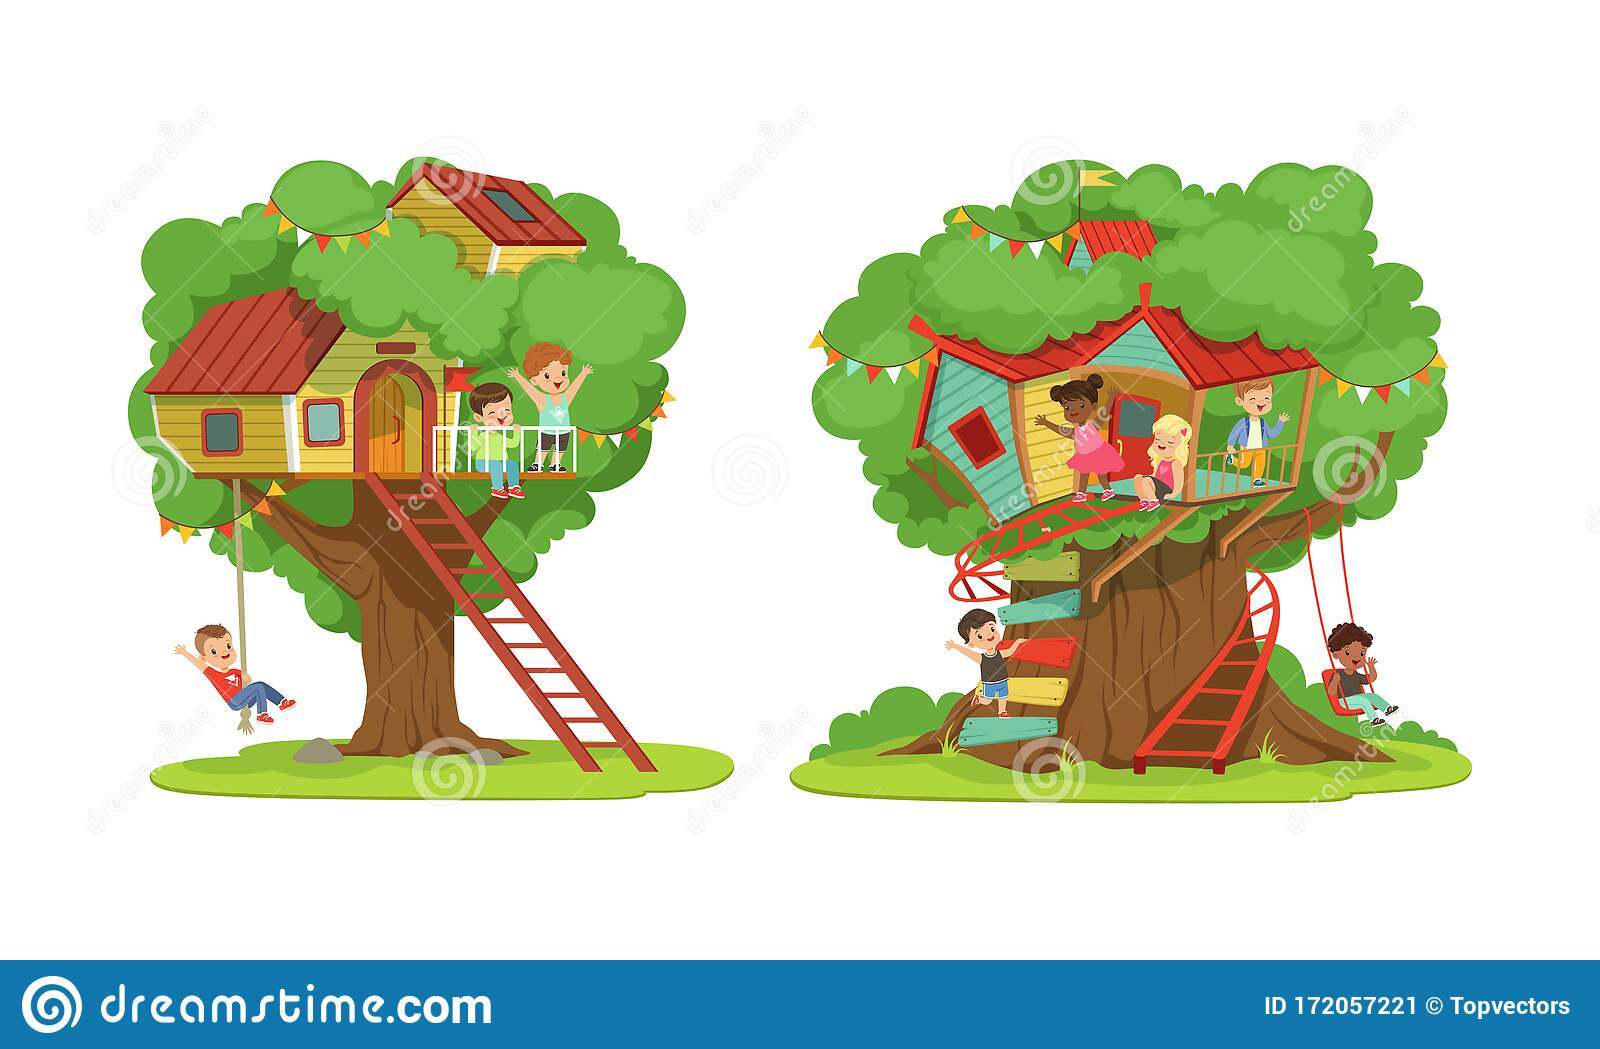 Tree House For Kids Collection Boys And Girls Playing And Having Fun In Treehouse Kids Playground With Swing And Stock Vector Illustration Of Green Happy 172057221 This way lazytown encourages kids to be more active and lead healthier lives. https www dreamstime com tree house kids collection boys girls playing having fun treehouse playground swing ladder vector illustration image172057221